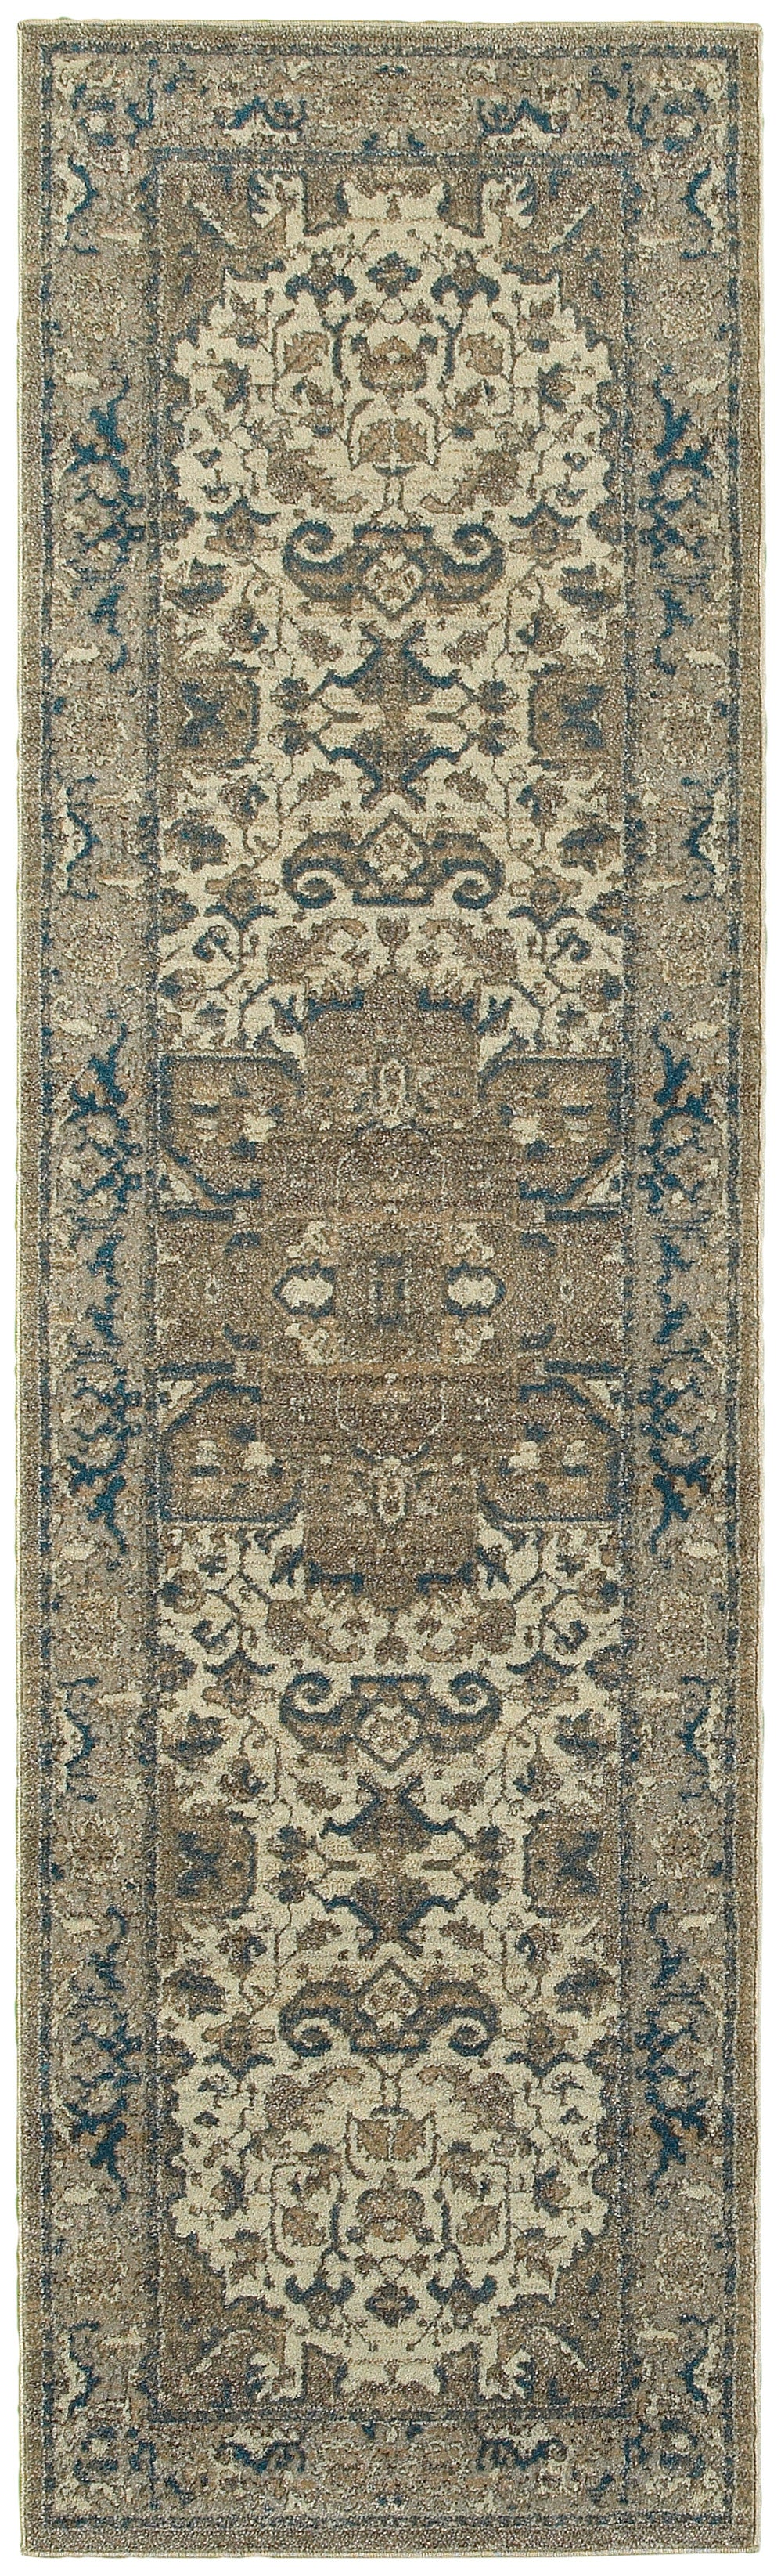 Oriental Weavers Pasha 5991D Ivory/Grey Medallion Area Rug